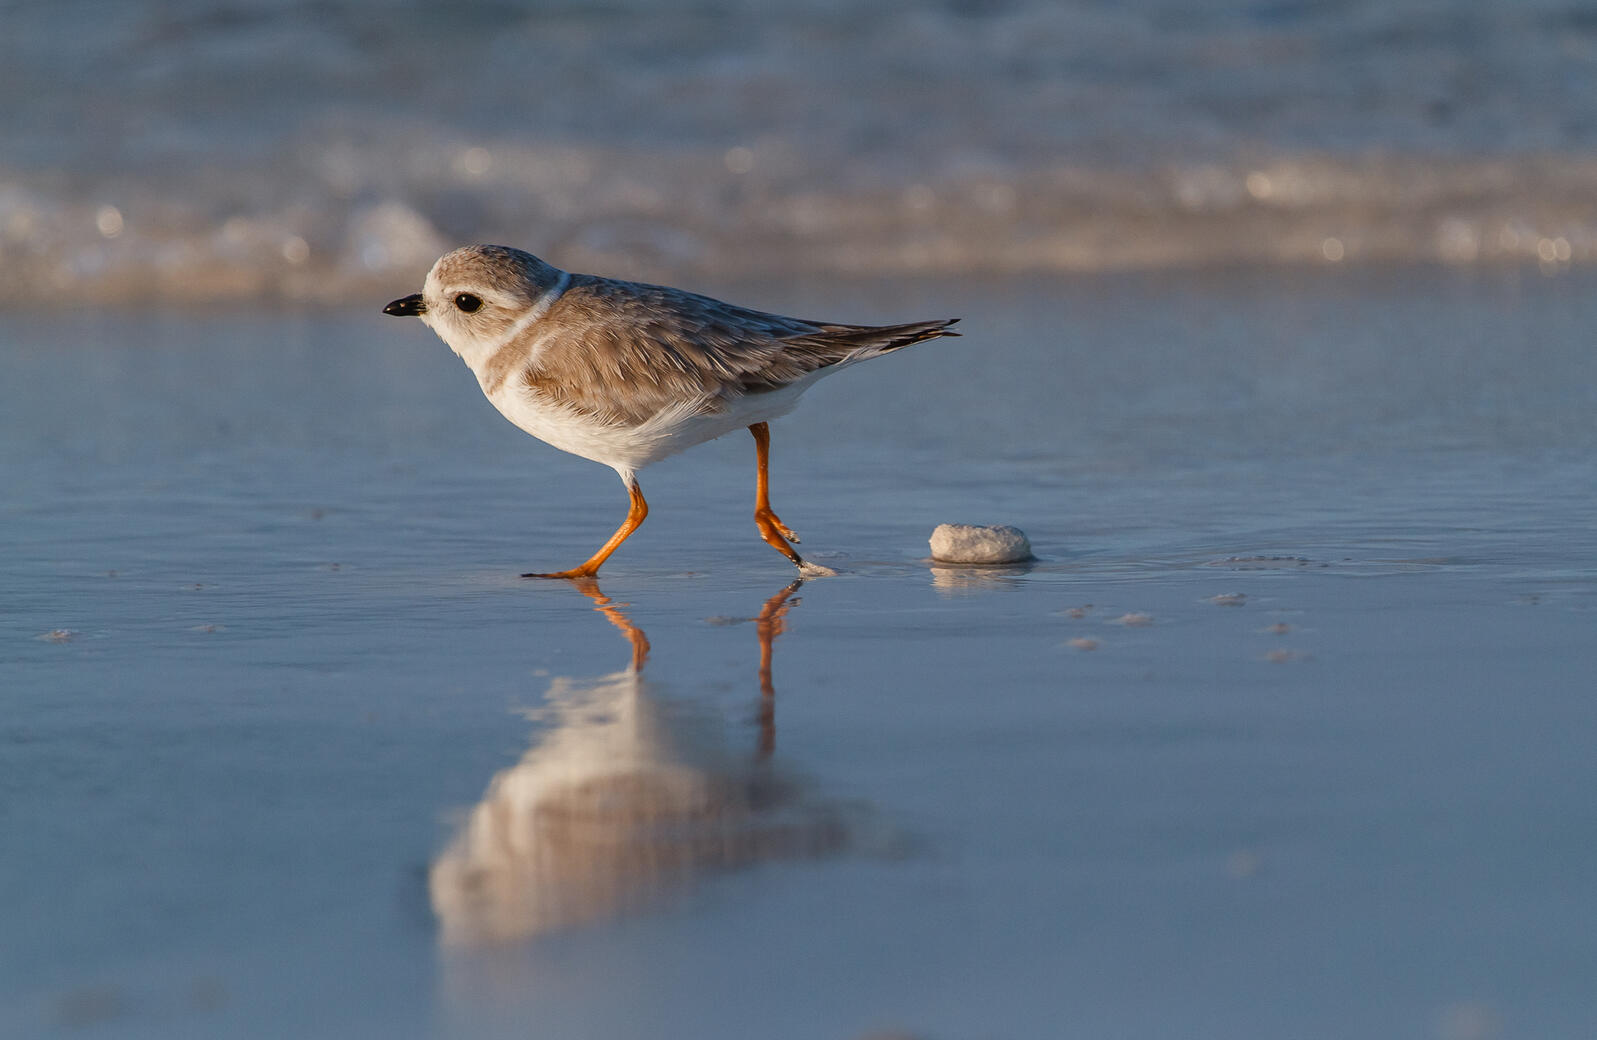 Pipping Plover. Natural infrastructure helps protect coastal habitats for birds like the Piping Plover. Lorraine Minns/Audubon Photography Awards